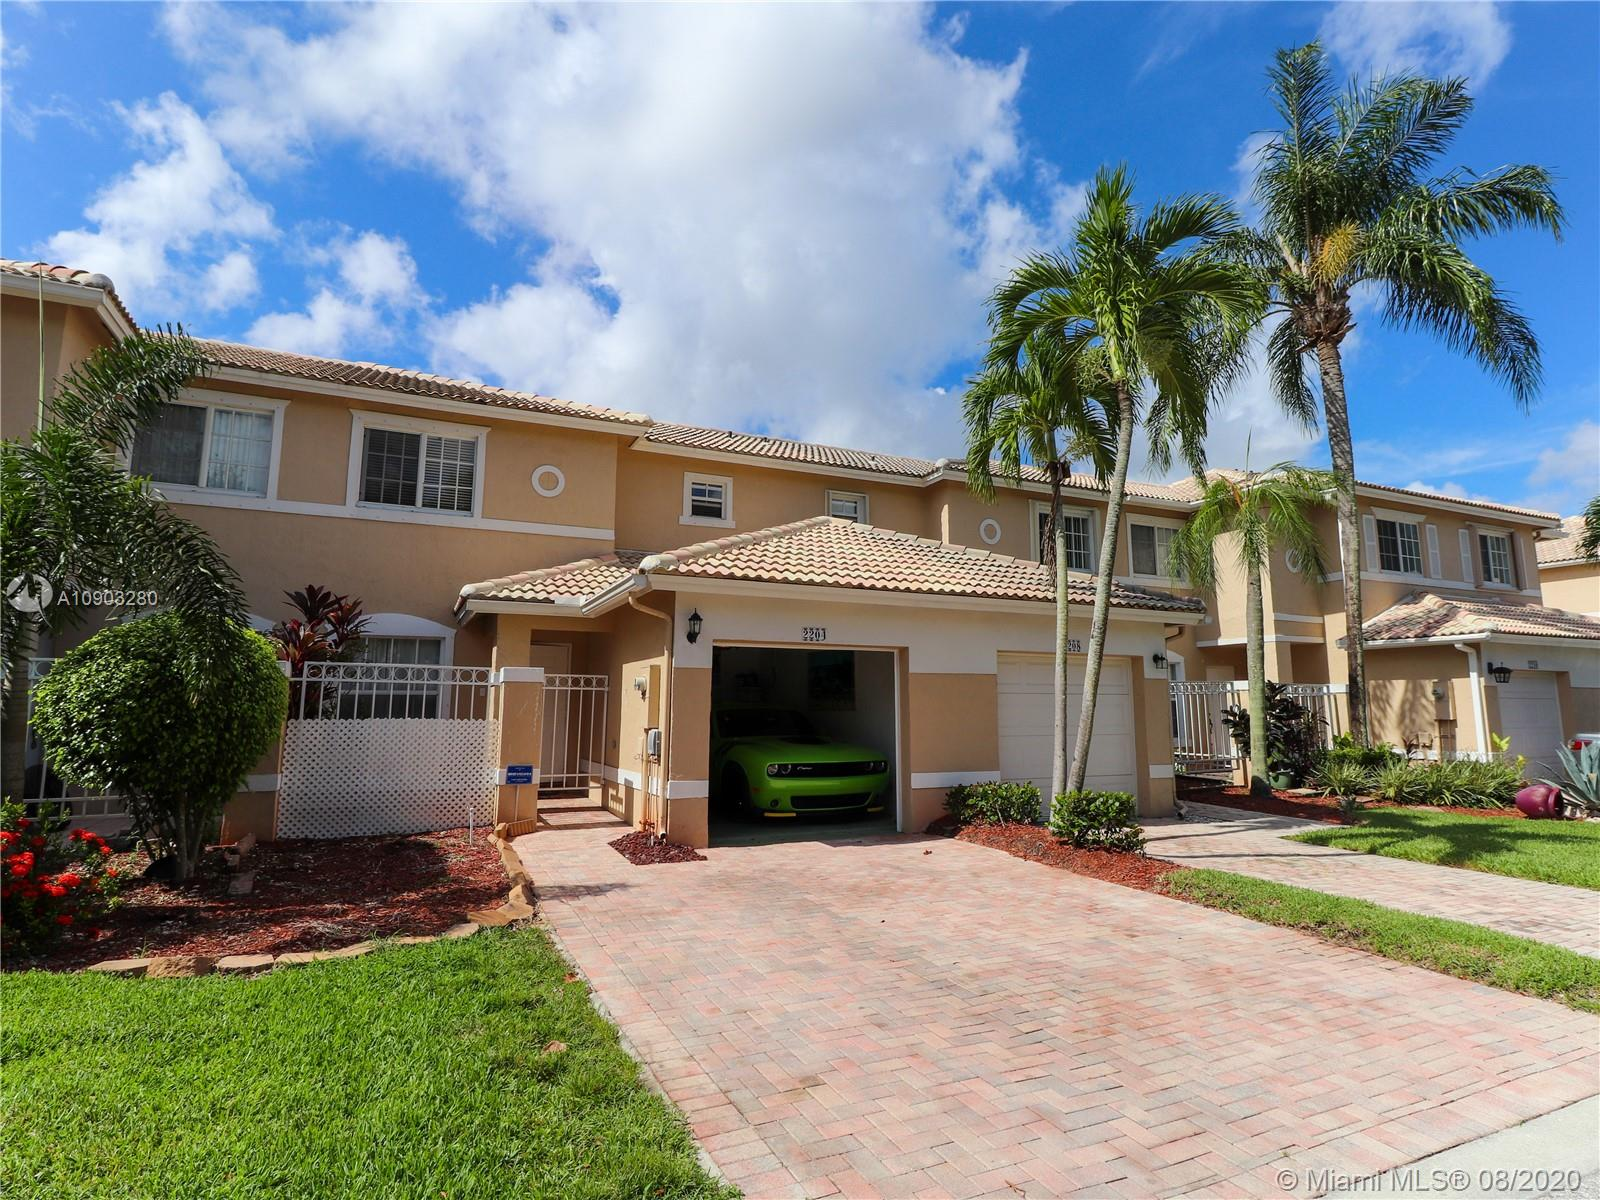 BEAUTIFUL TOWNHOME AT RESORT STYLE AND GATE COMMUNITY CLUB HOUSE WITH 2 BED 2 1/2  BATH IN PEMBROKE ISLES. UPDATED KITCHEN & PODWER ROOM.